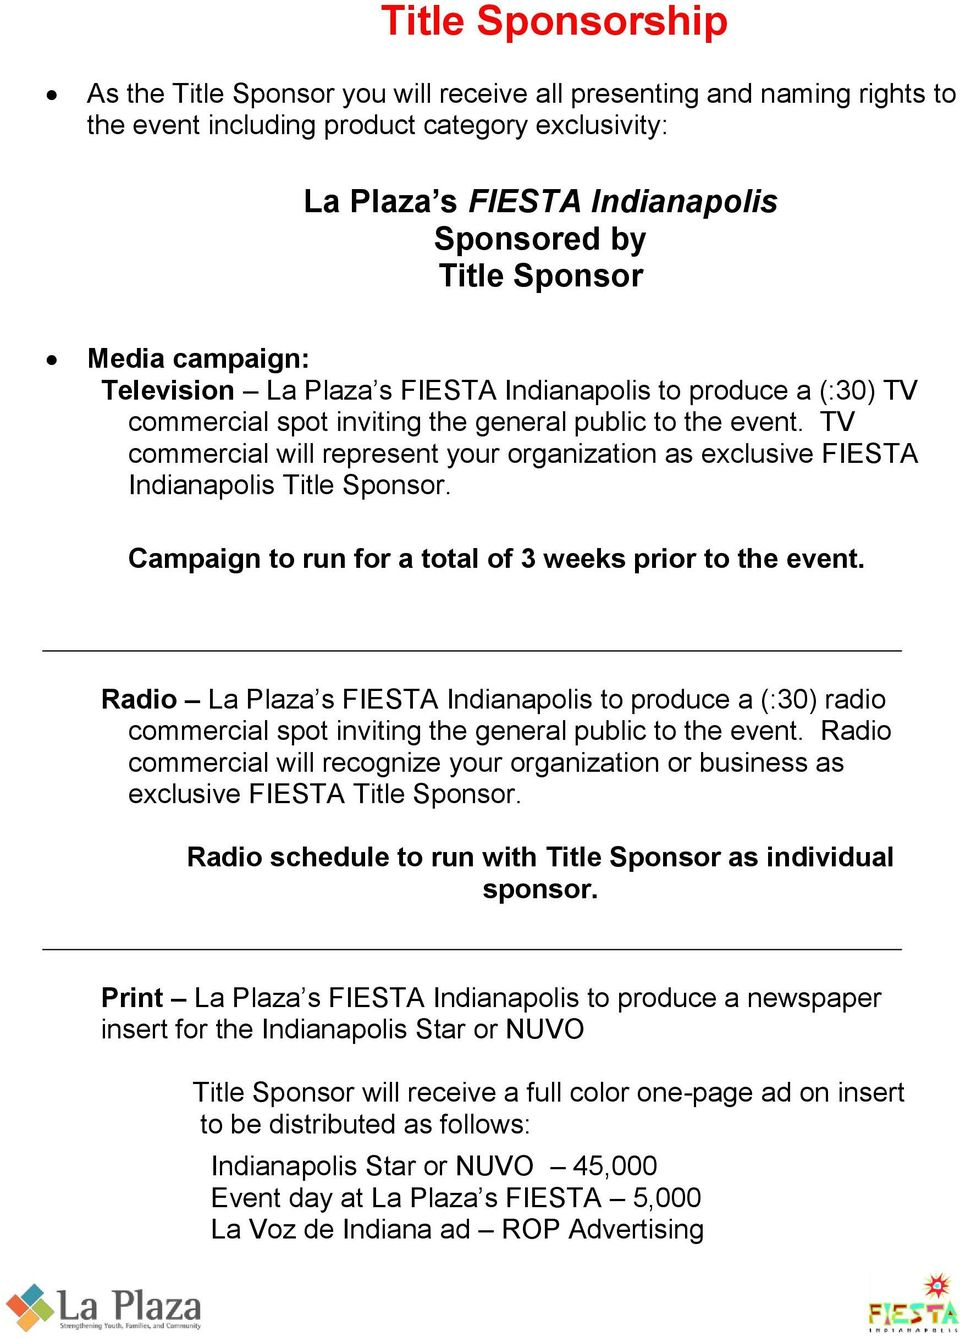 TV commercial will represent your organization as exclusive FIESTA Indianapolis Title Sponsor. Campaign to run for a total of 3 weeks prior to the event.